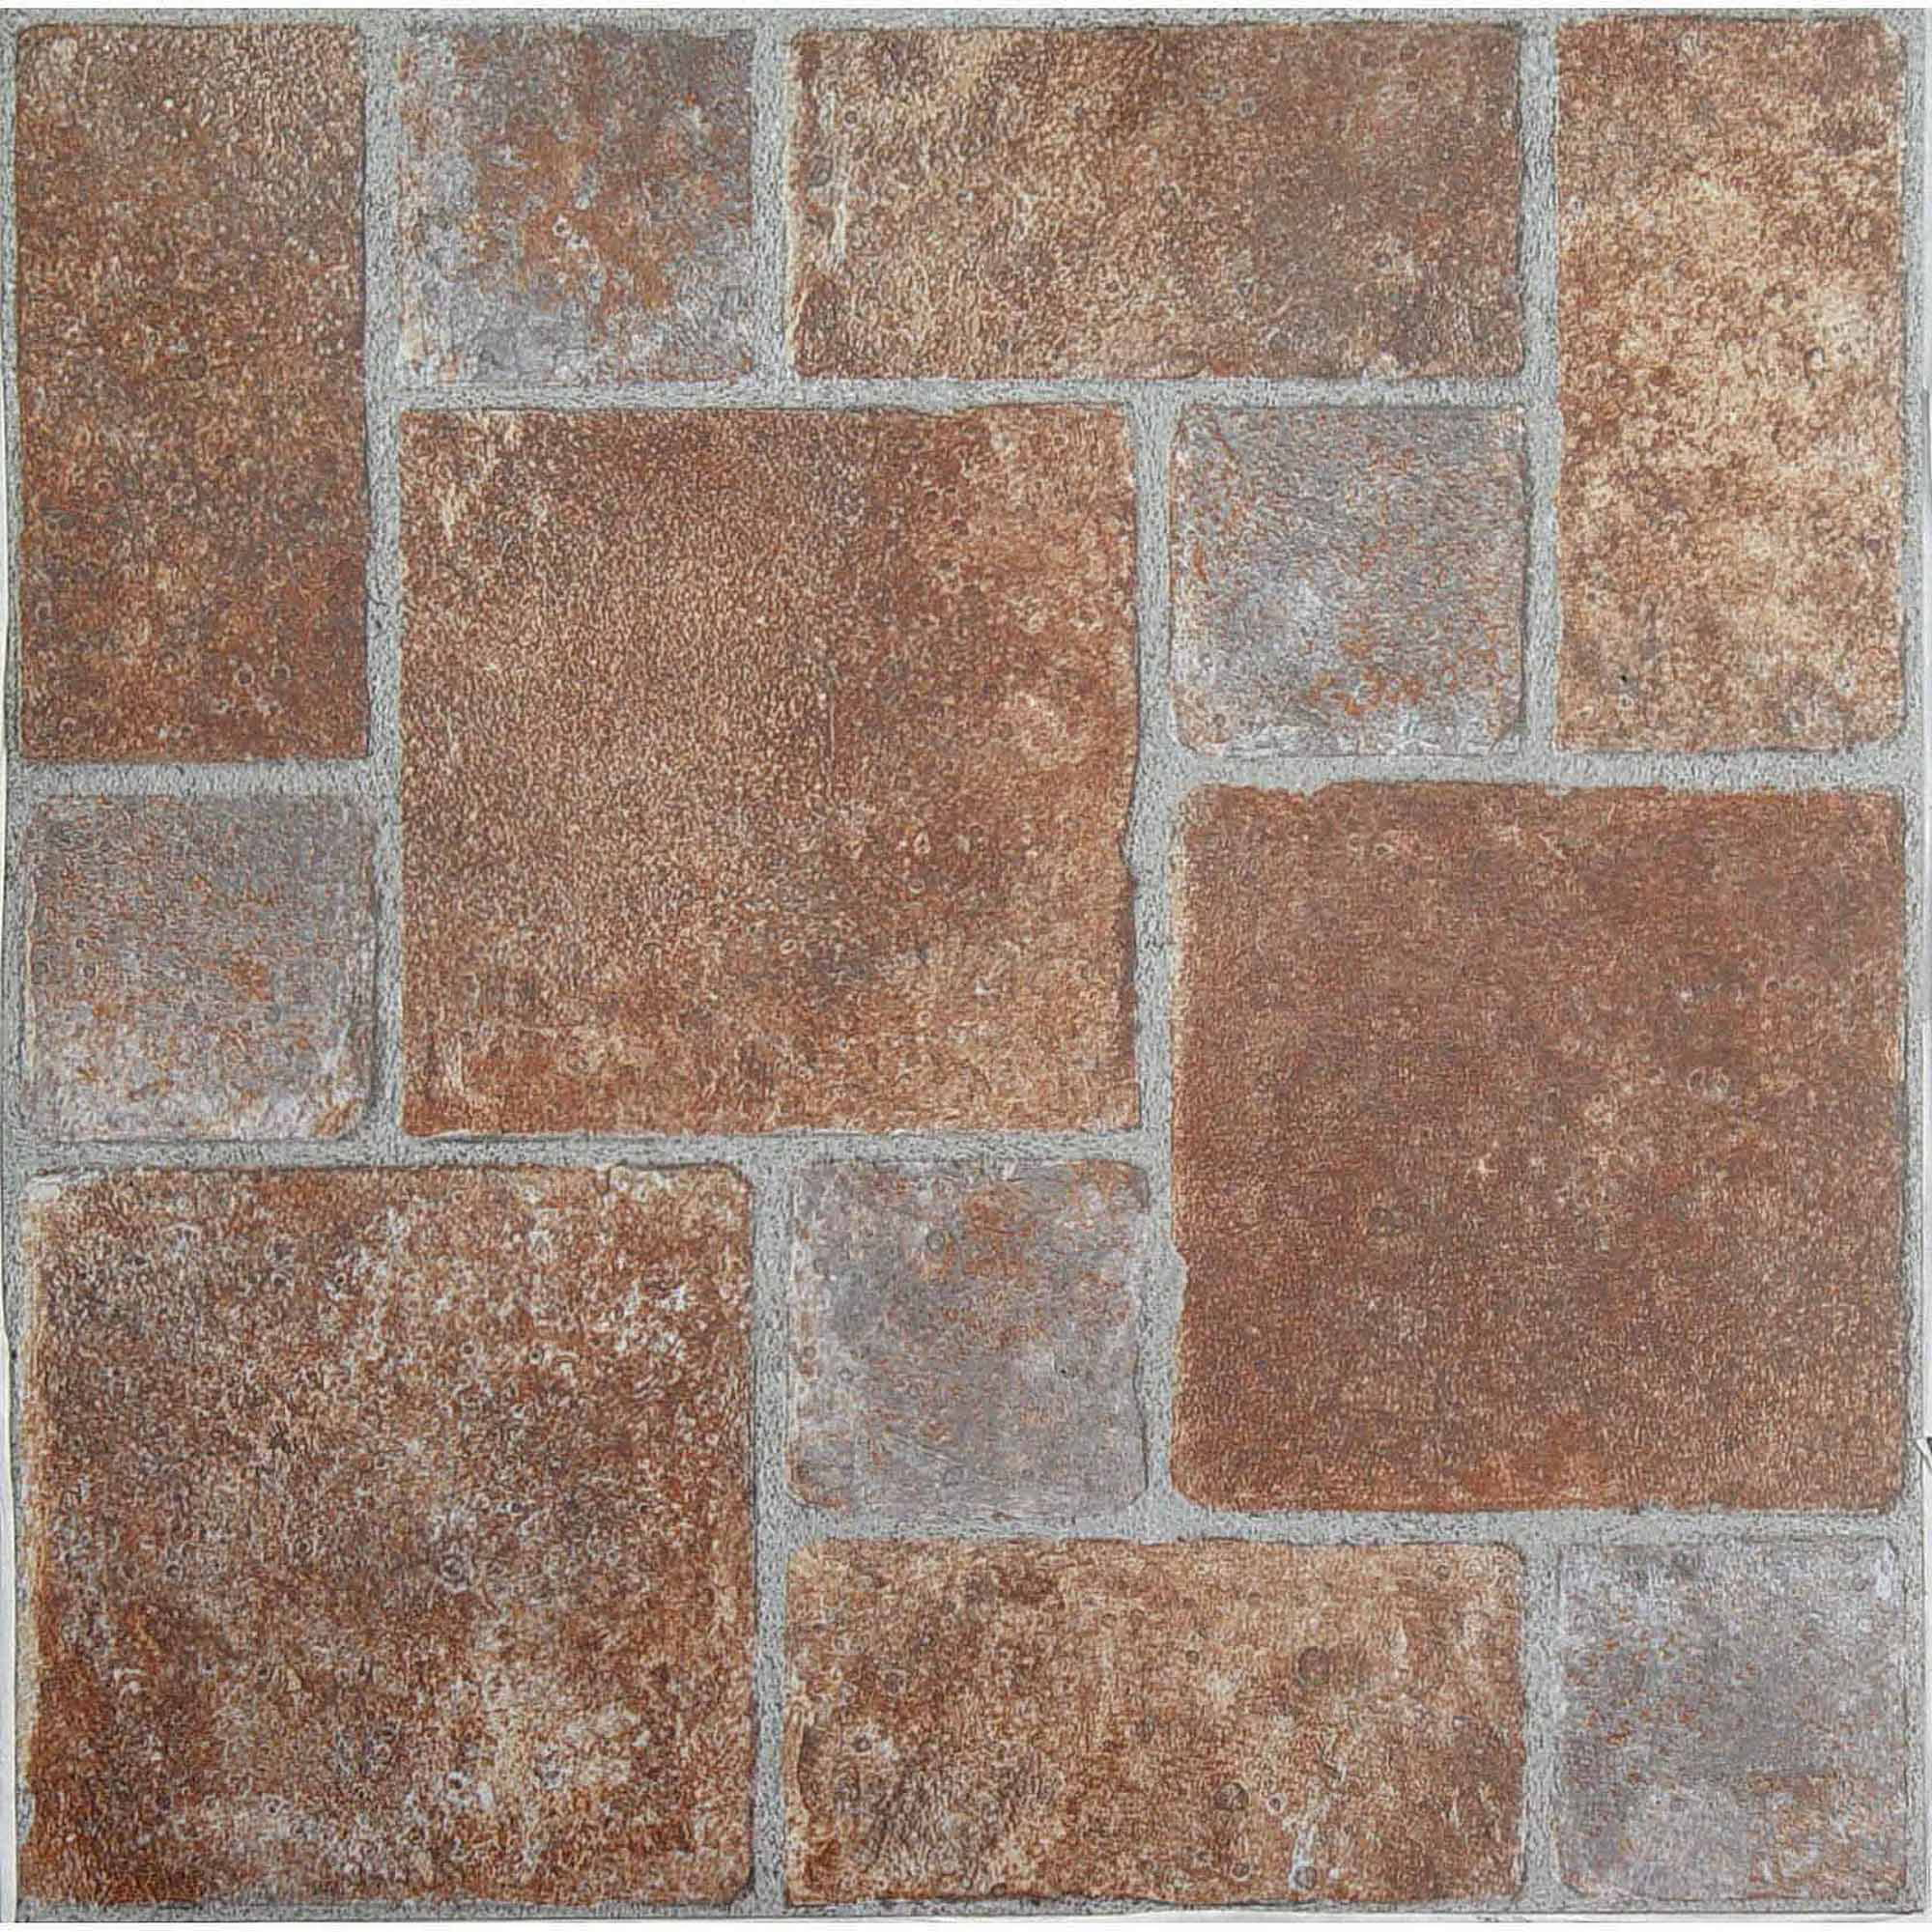 Nexus brick pavers 12x12 self adhesive vinyl floor tile 20 tiles nexus brick pavers 12x12 self adhesive vinyl floor tile 20 tiles20 sqft walmart dailygadgetfo Images